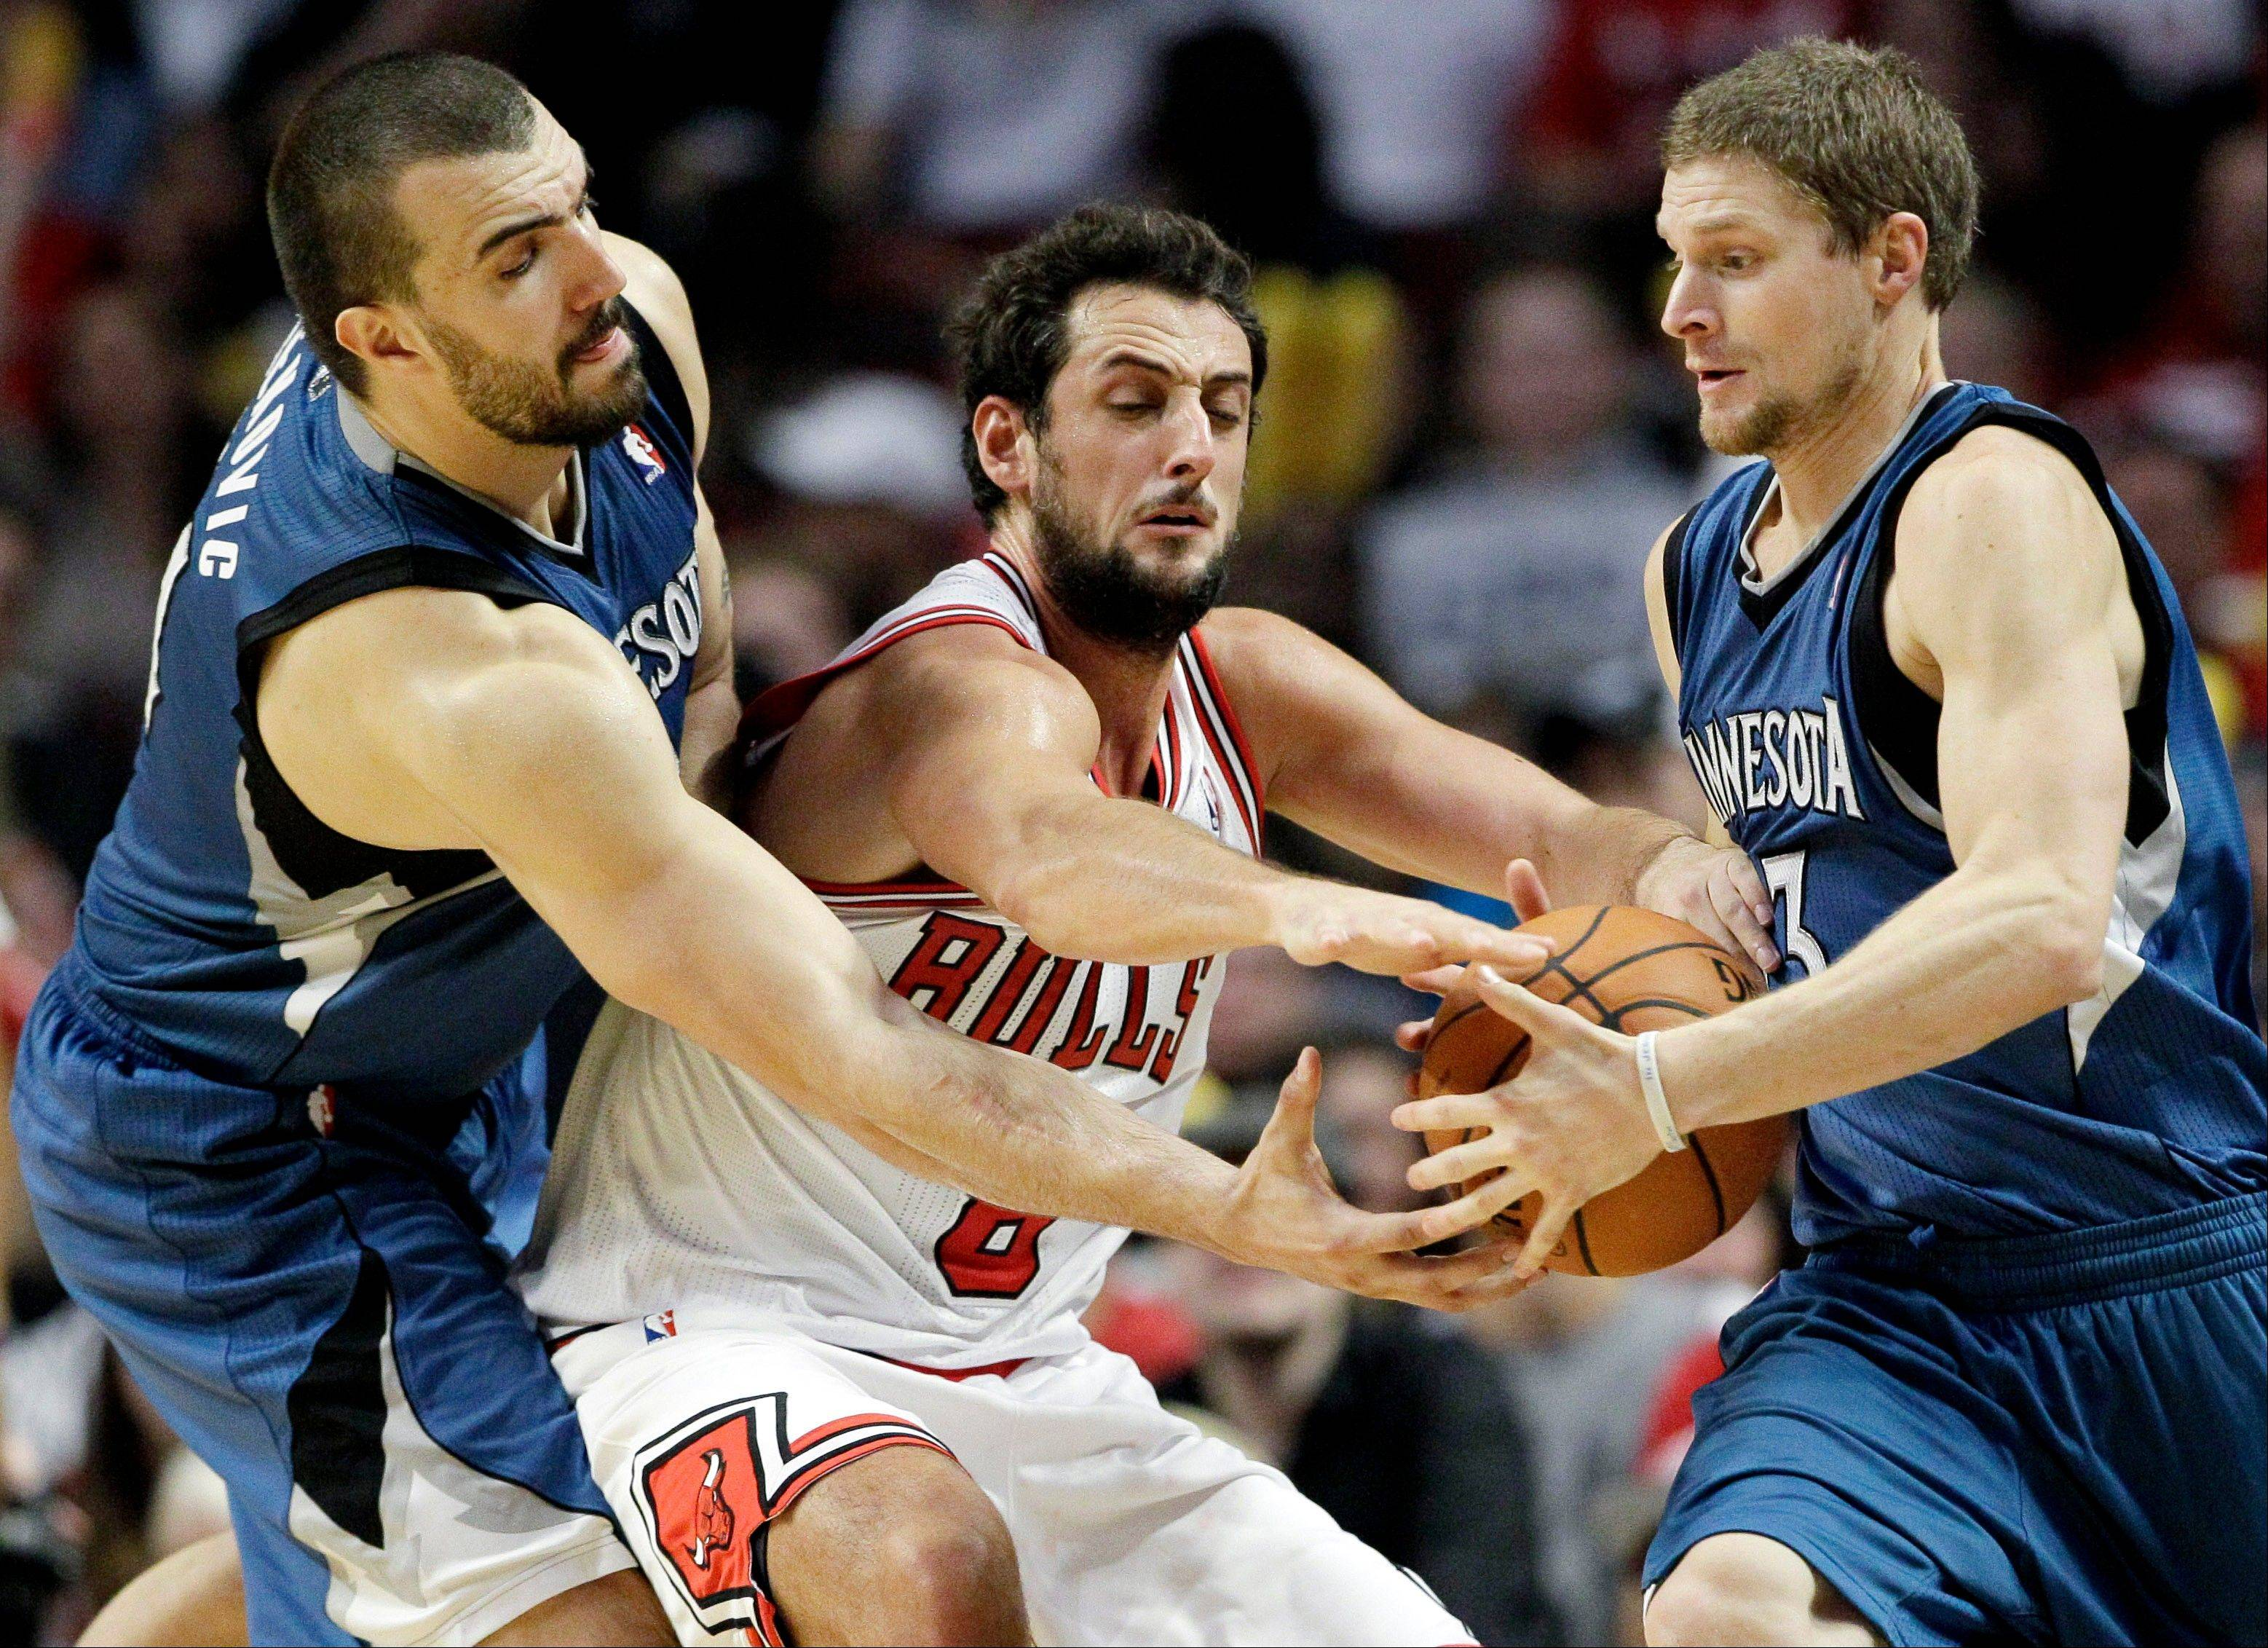 Minnesota Timberwolves center Nikola Pekovic, left, passes the ball to guard Luke Ridnour as Bulls guard Marco Belinelli, center, reaches.